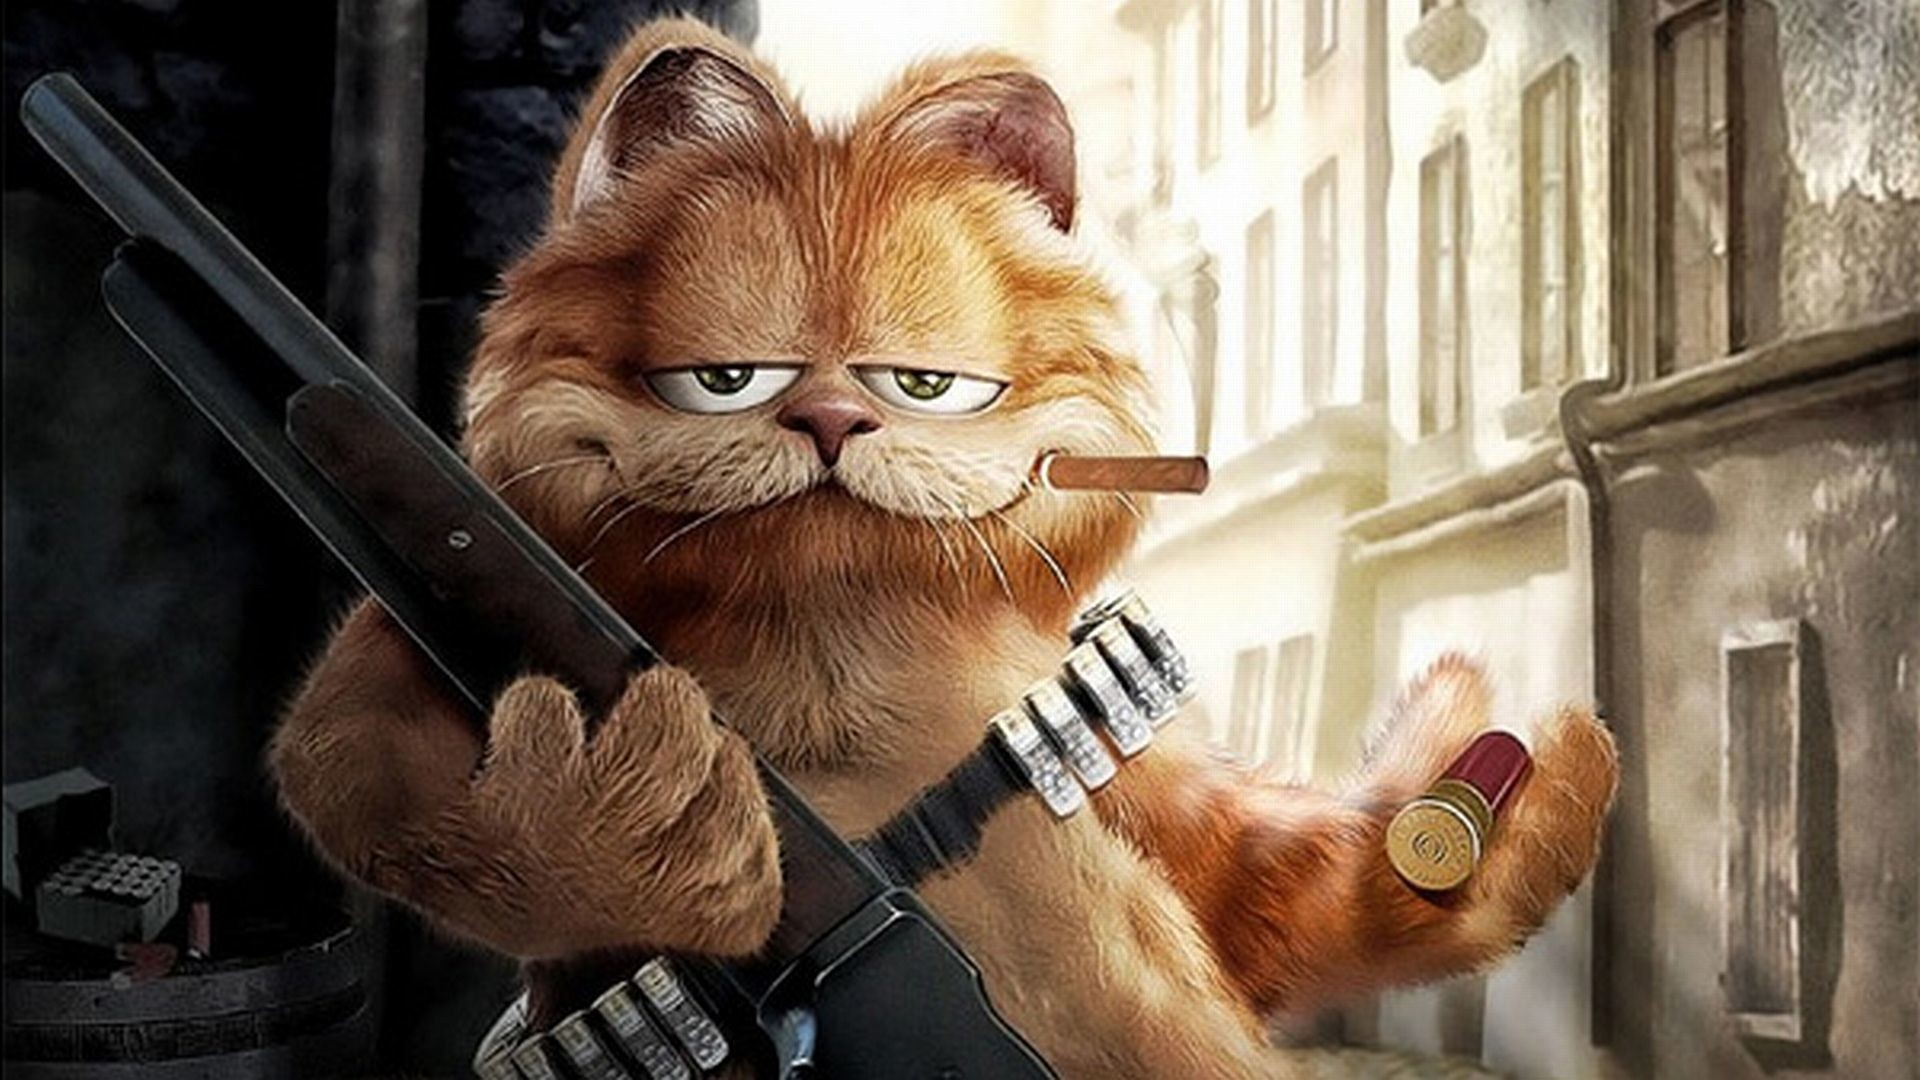 Res: 1920x1080, Funny Garfield Wallpapers Wallpaper